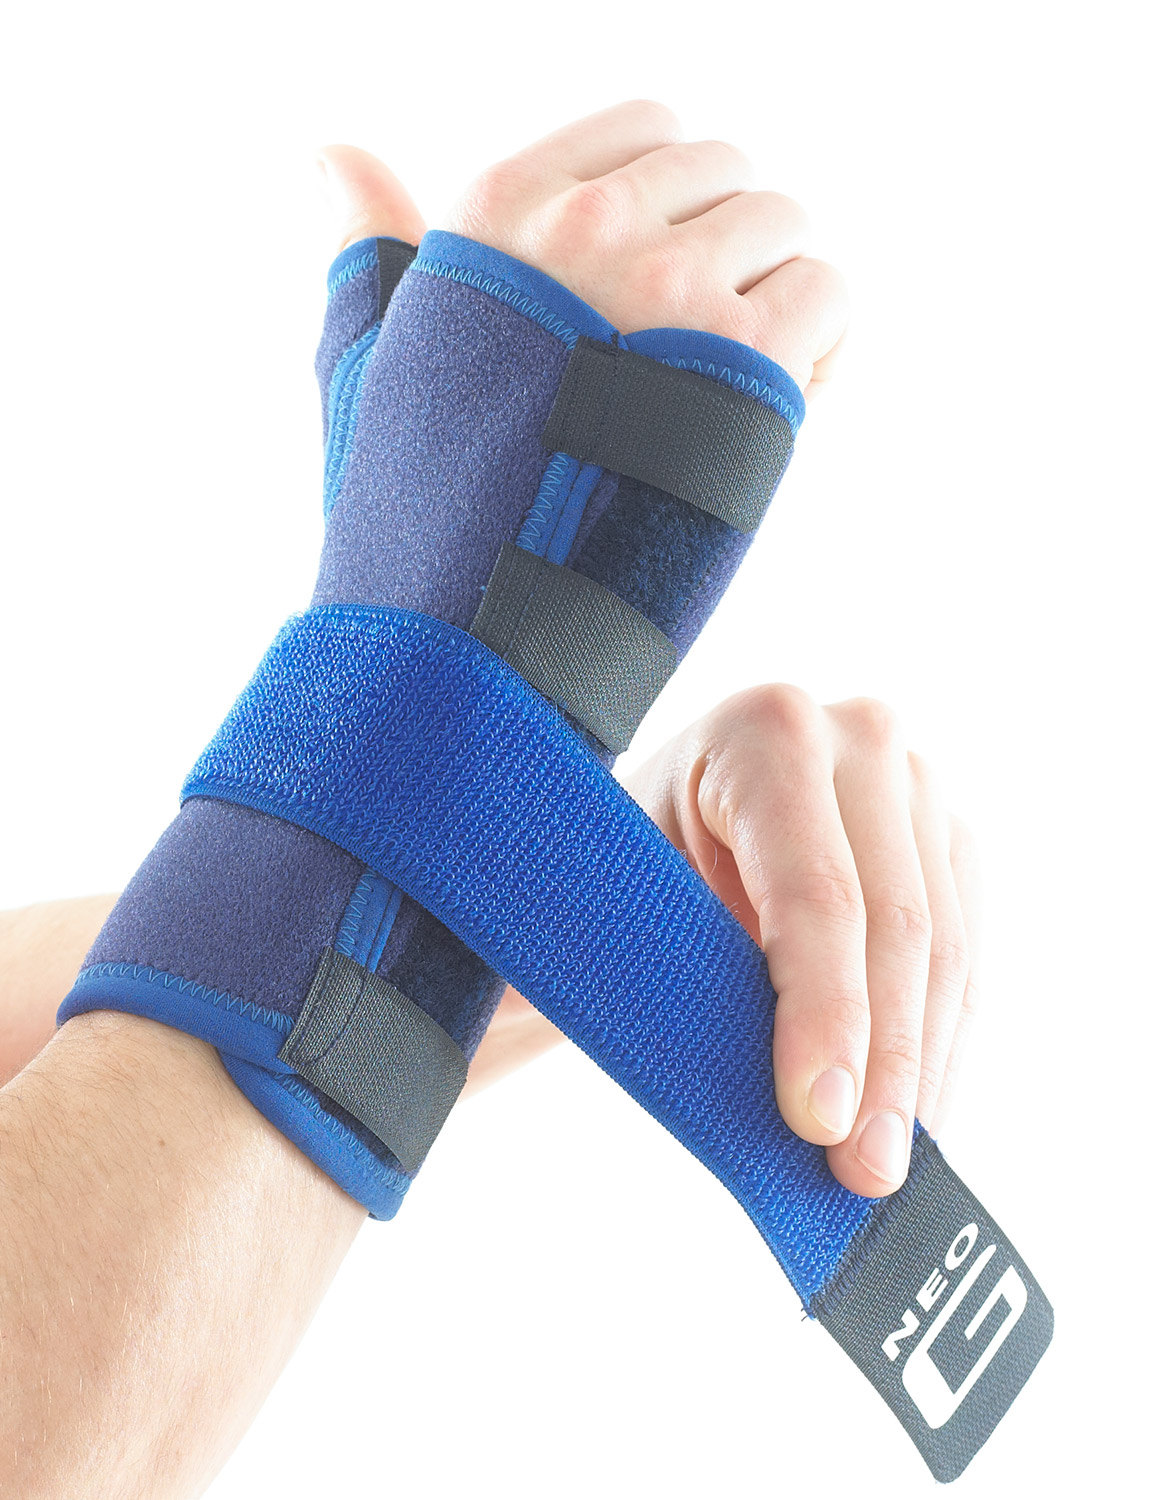 996 - STABILIZED WRIST AND THUMB BRACE  The adjustable strap provides additional compression around the wrist and/or hand if needed, which can help encourage the correct alignment of the carpal bones and help reduce inflammation, useful in the management of carpal tunnel syndrome.